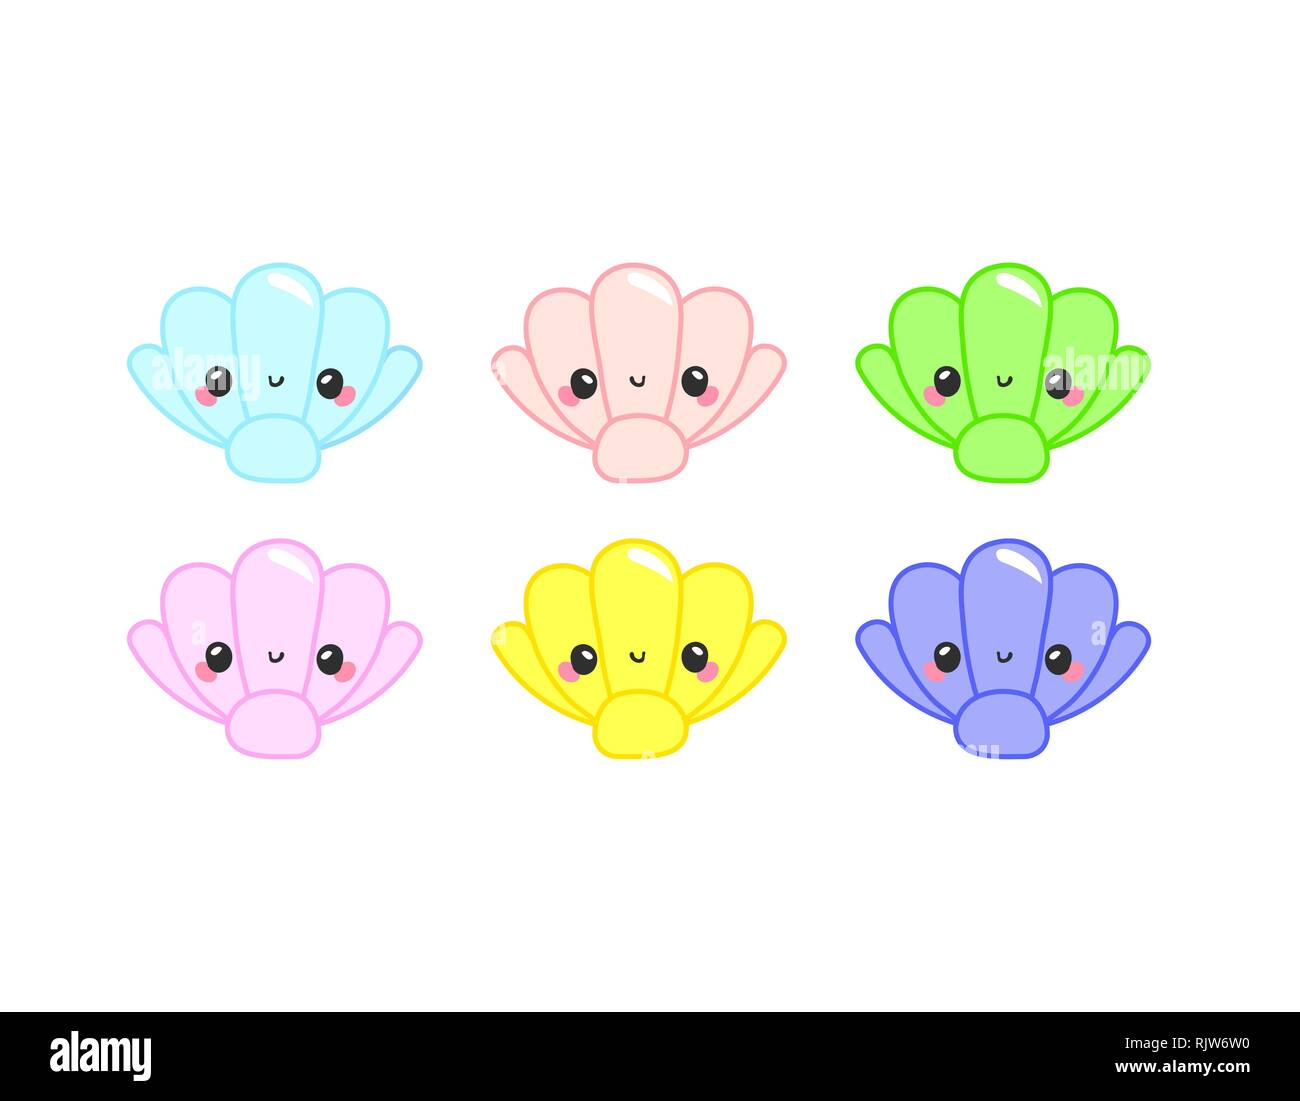 Cute colorful cartoon sea animals in circle for baby designs